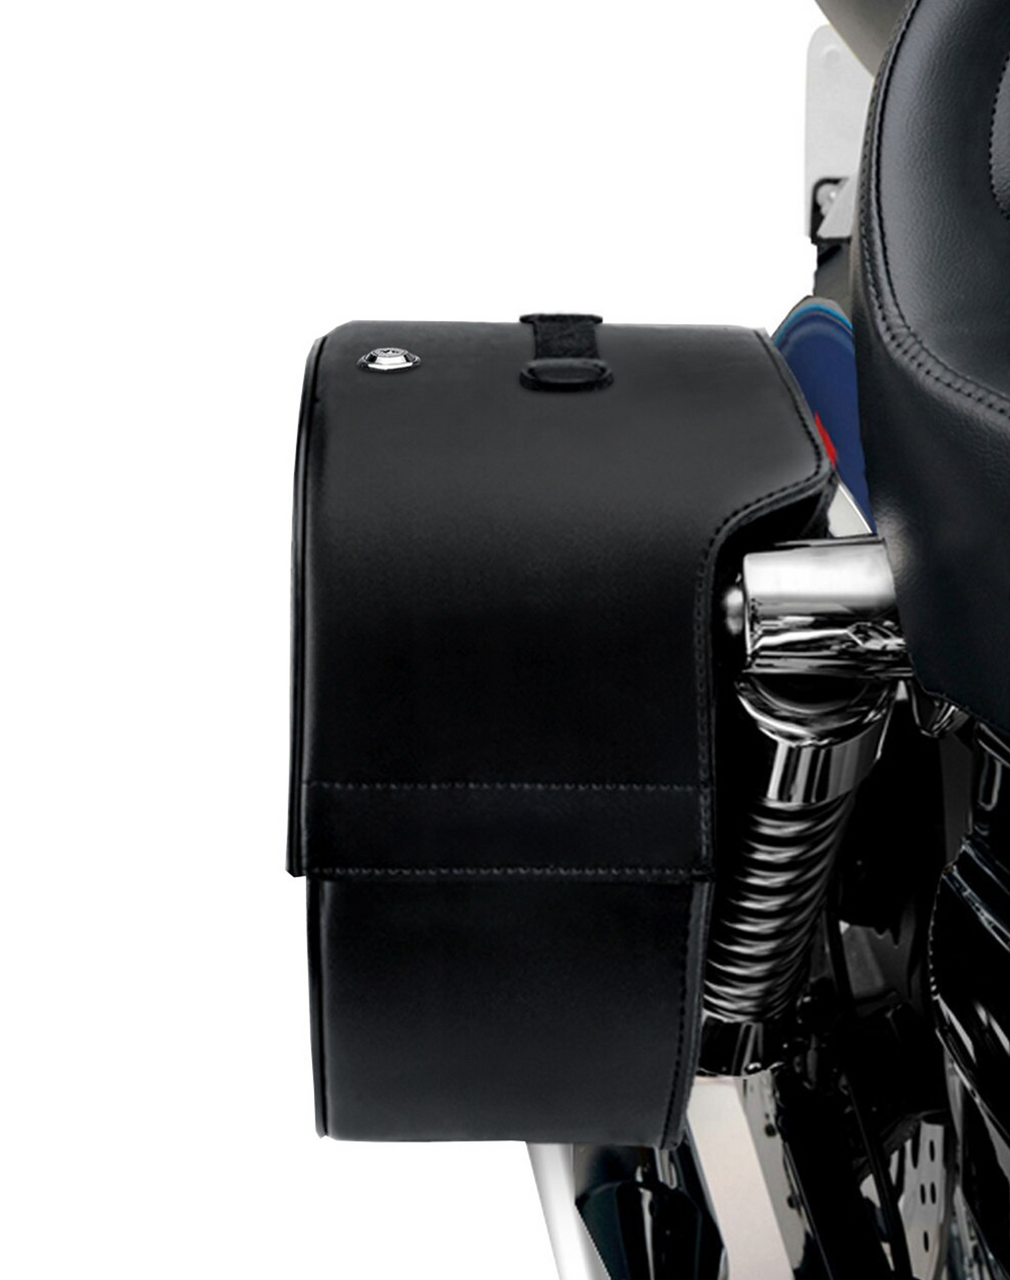 Viking Armor Hard Large Studded Leather Motorcycle Saddlebags For Harley Dyna Street Bob FXDB Shock Cutout View